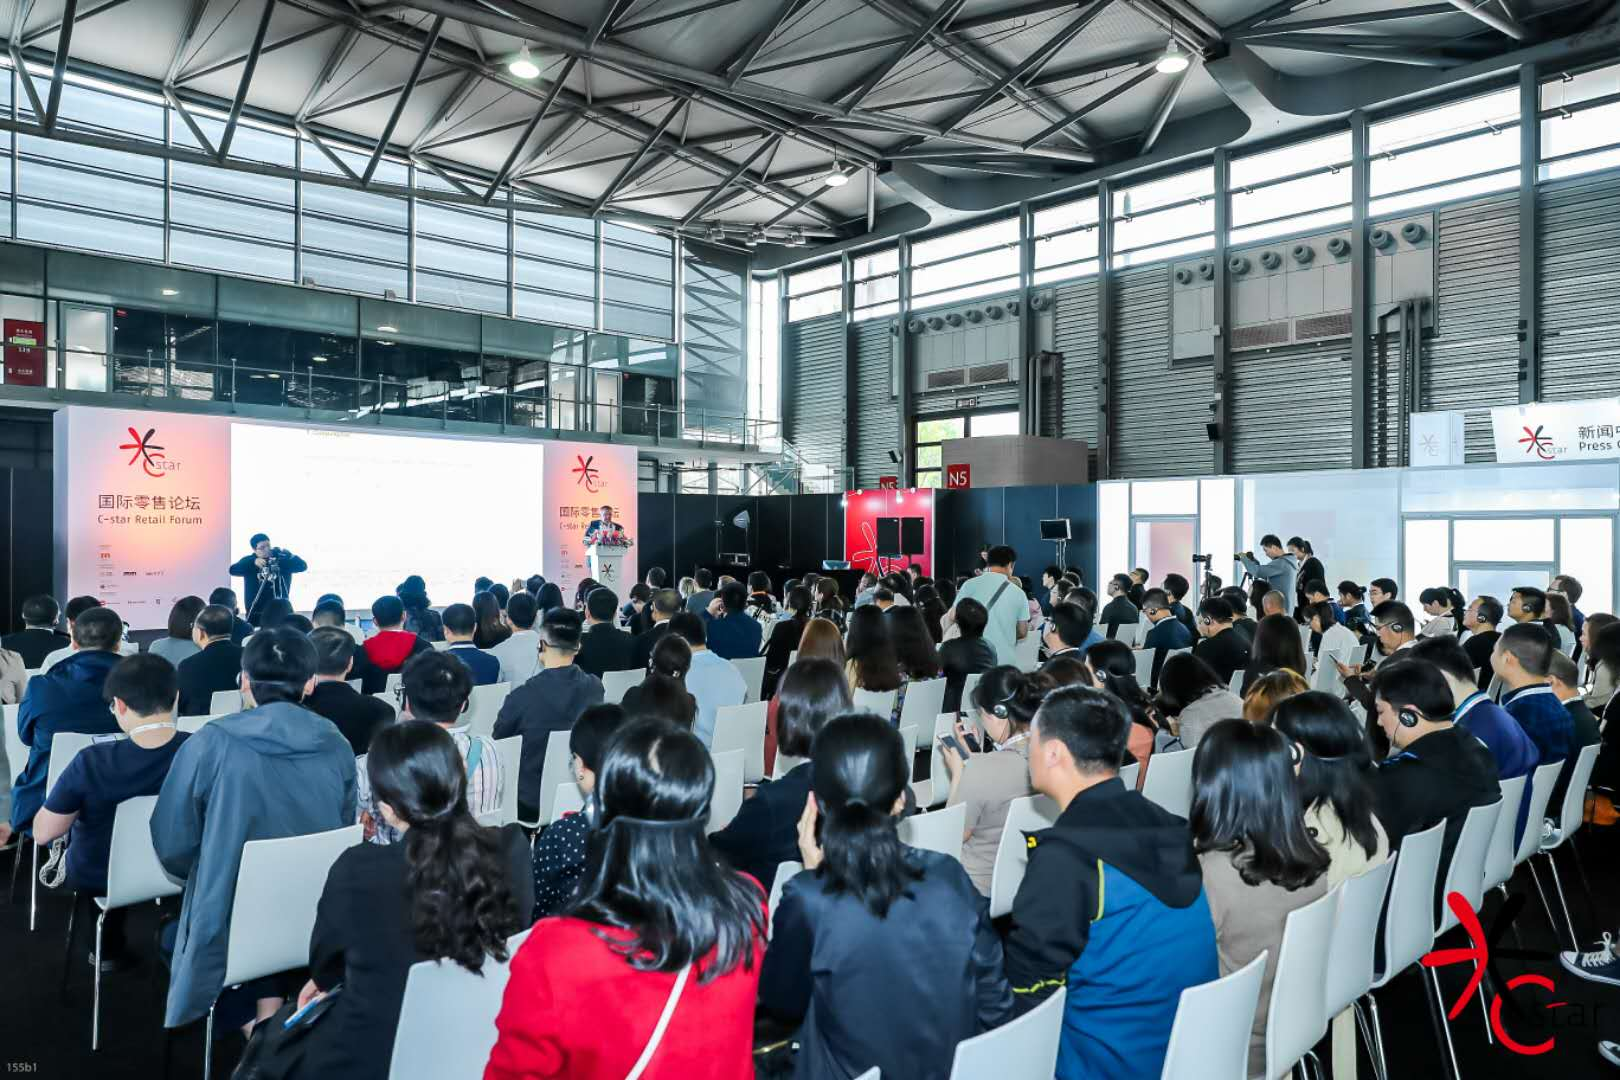 C-star 2019 closed with another success story in retail